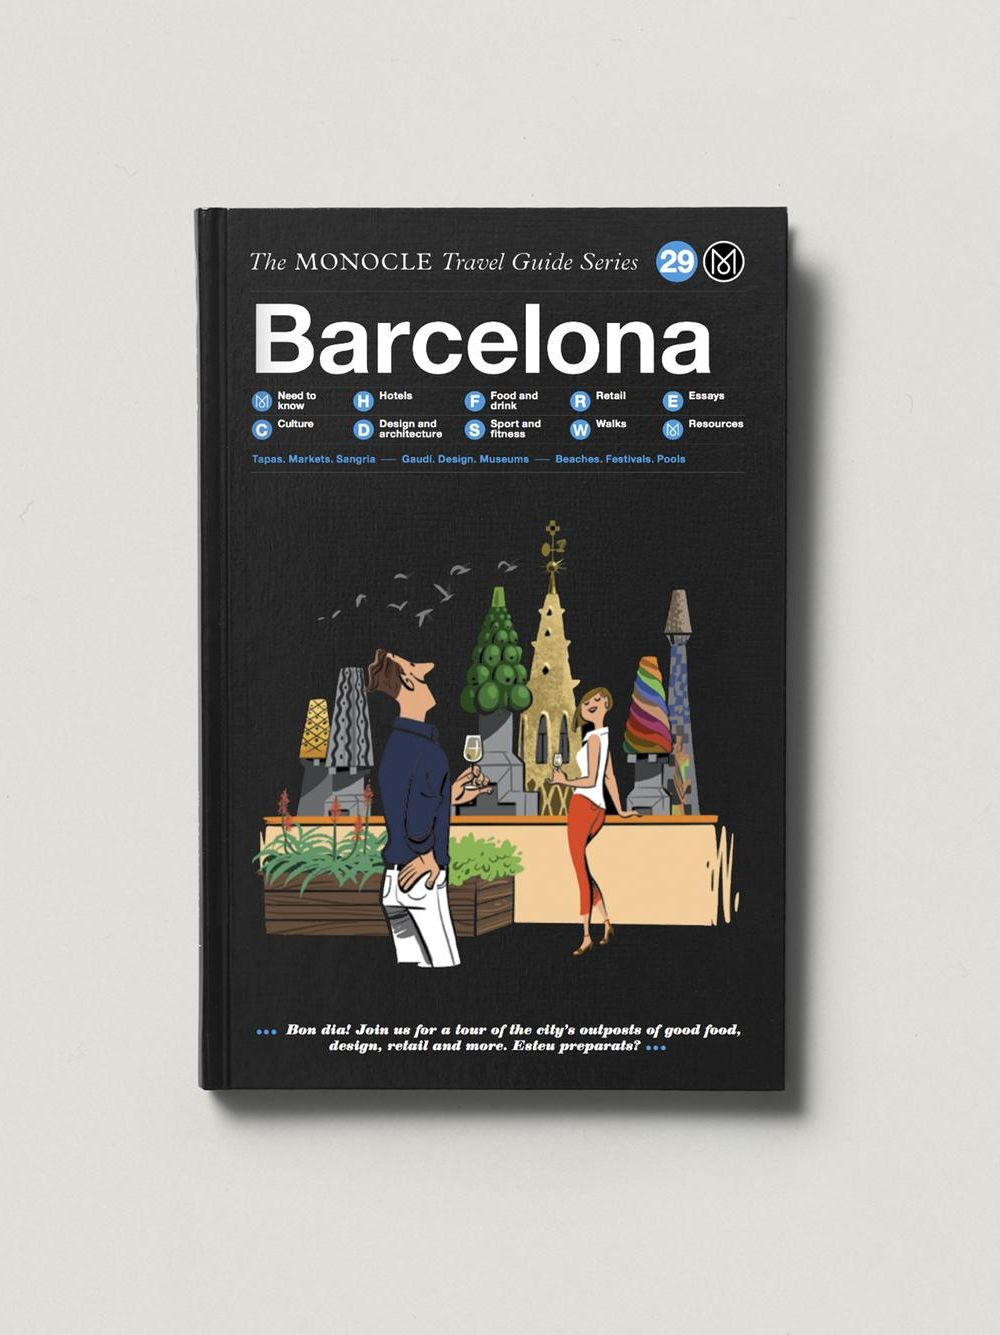 The Monocle Travel Guide, Barcelona